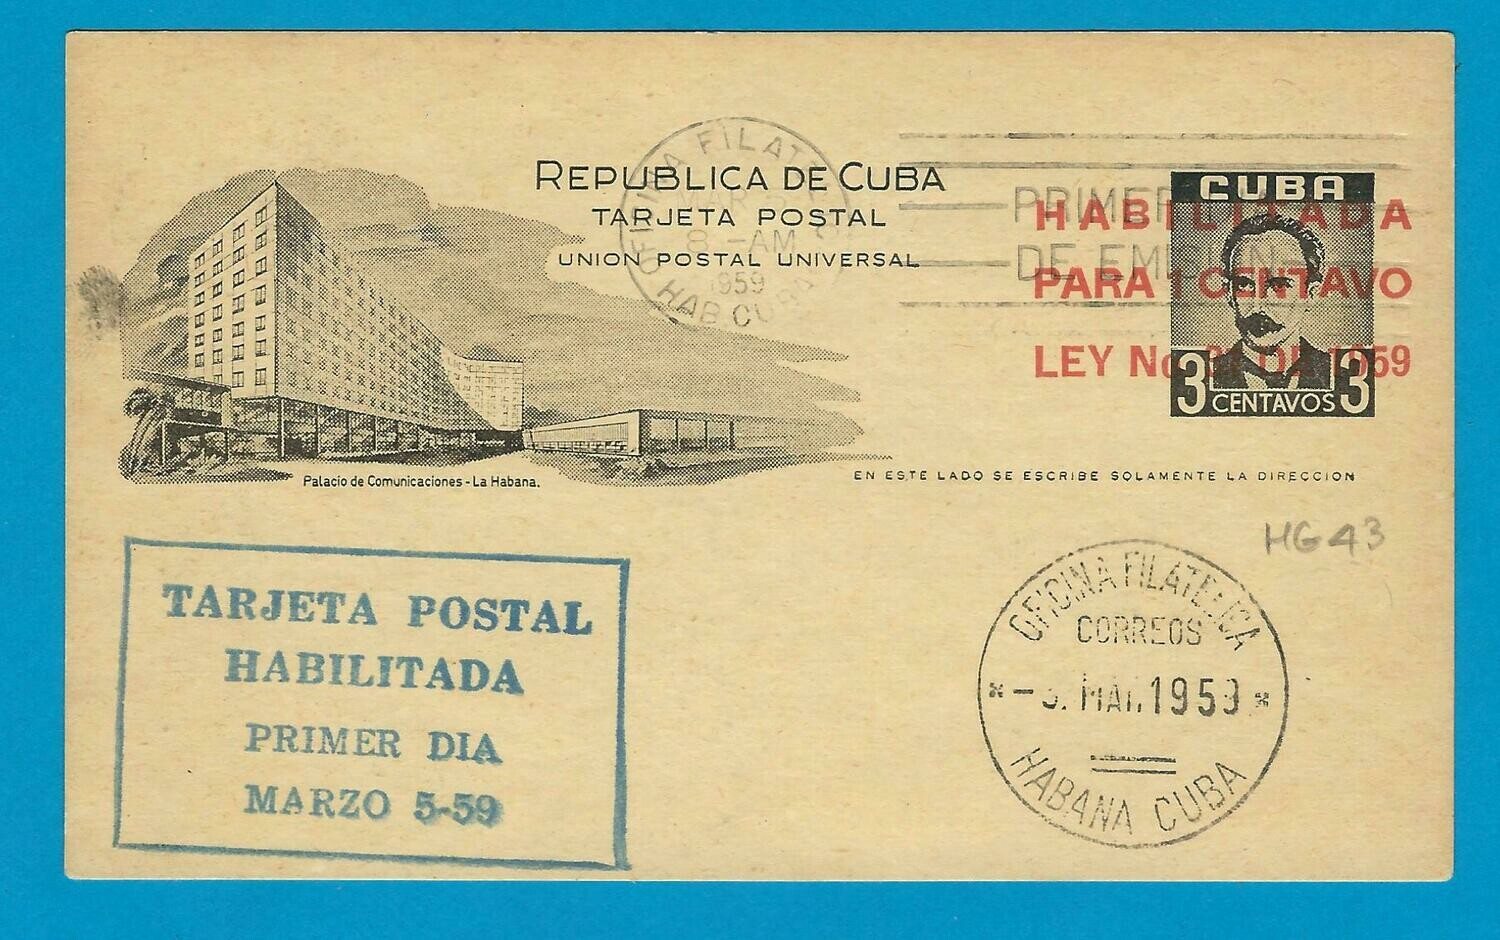 CUBA postal card 1959 with Habilitada overprint